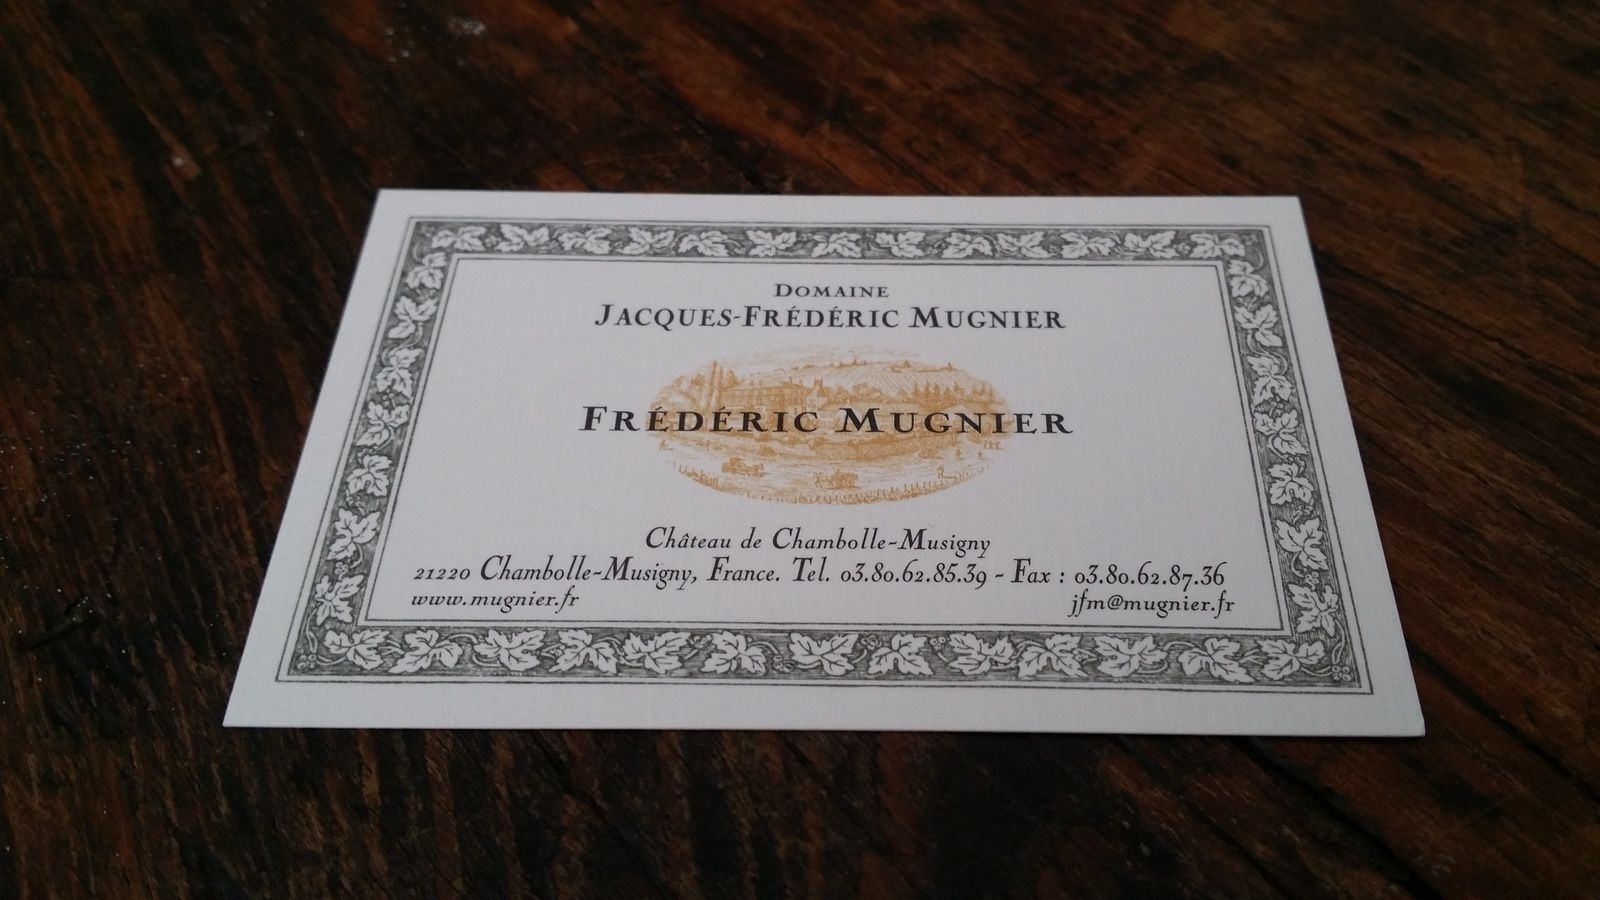 JACQUES FREDERIC MUGNIER, CHAMBOLLE MUSIGNY